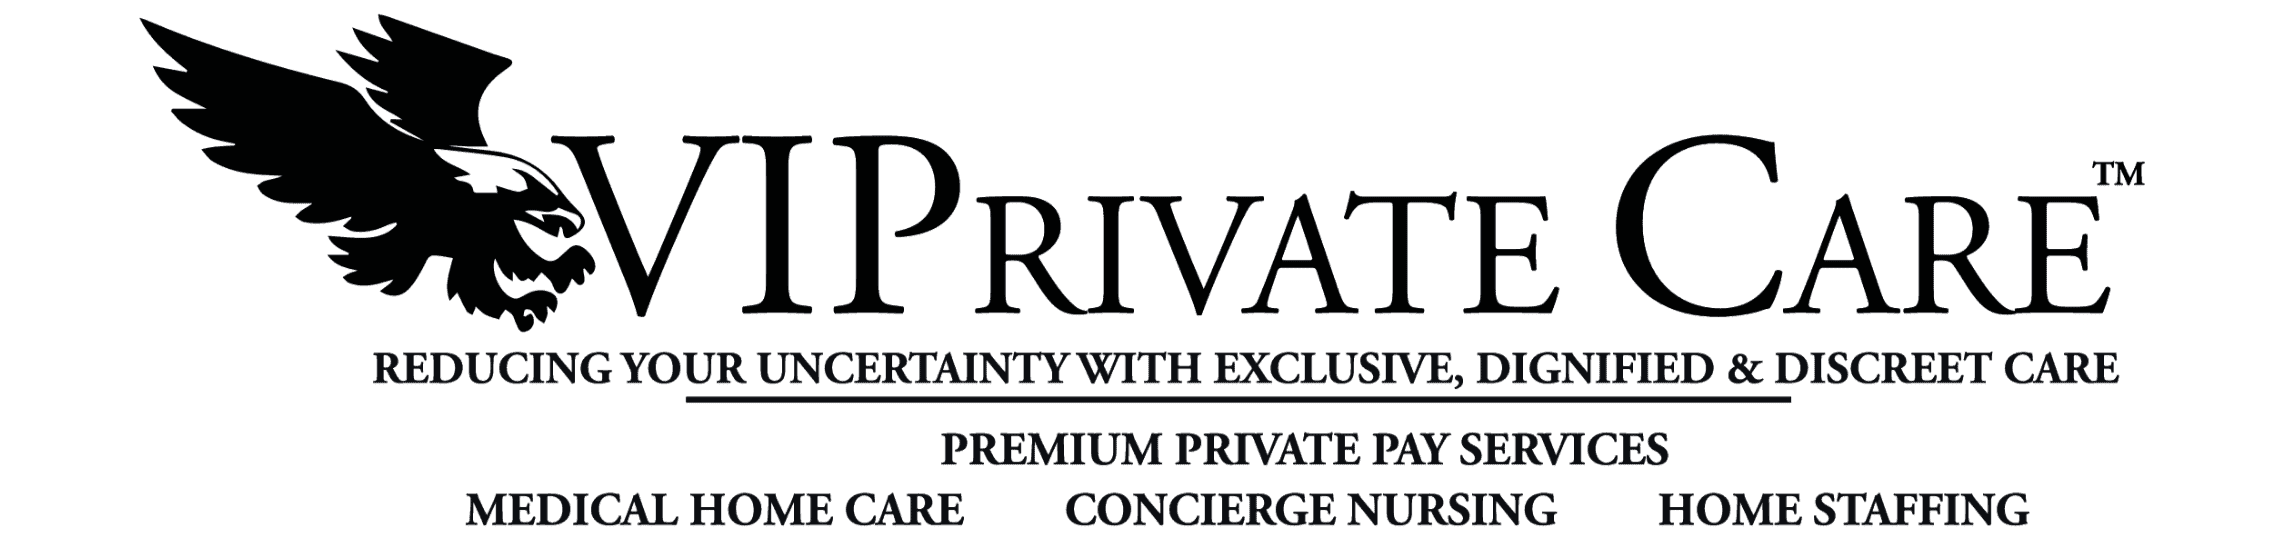 Terms & Conditions - Global Private Home Care, LLC